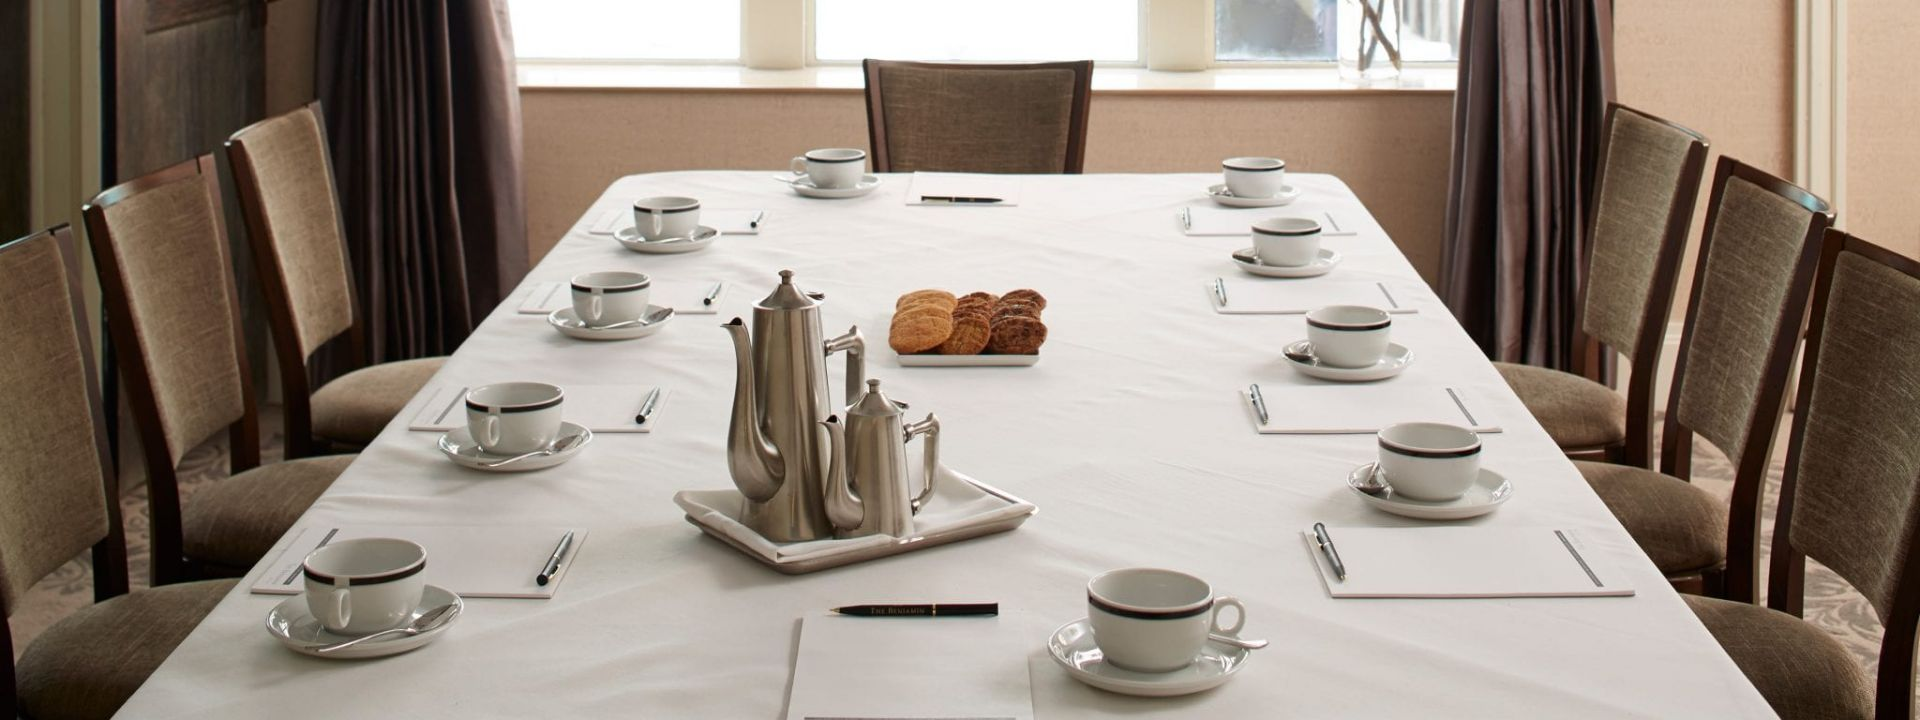 A meeting table in The Benjamin Hotel NYC